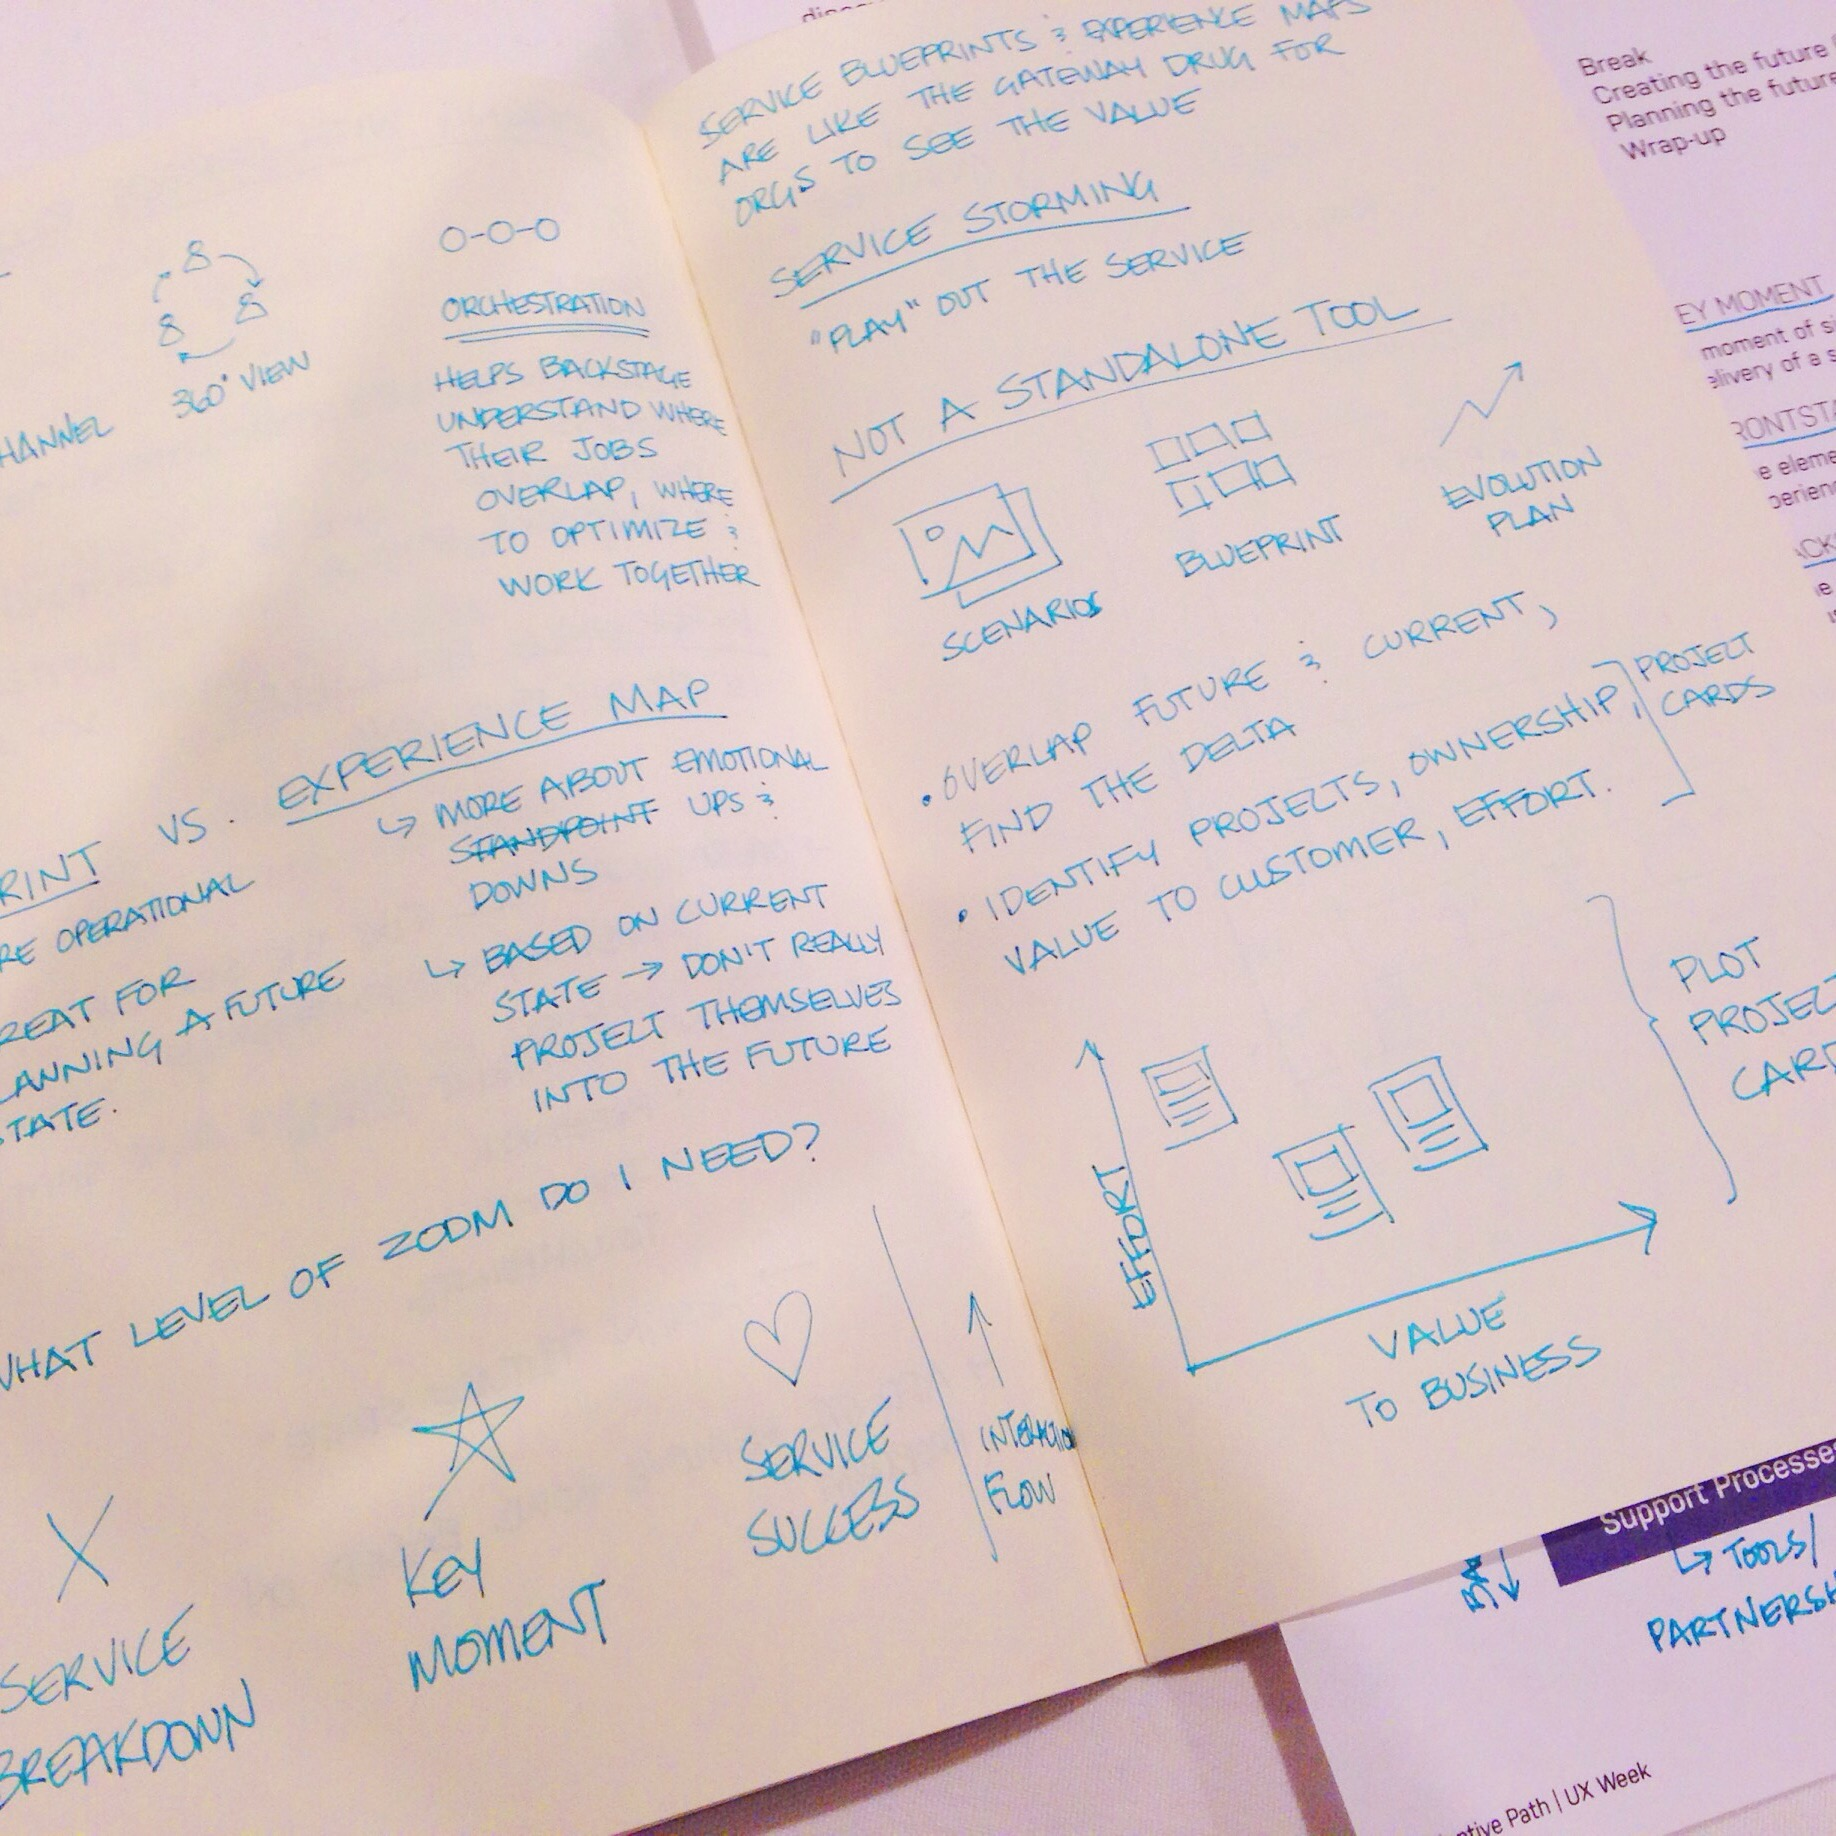 Research methods and design notes in notebook.